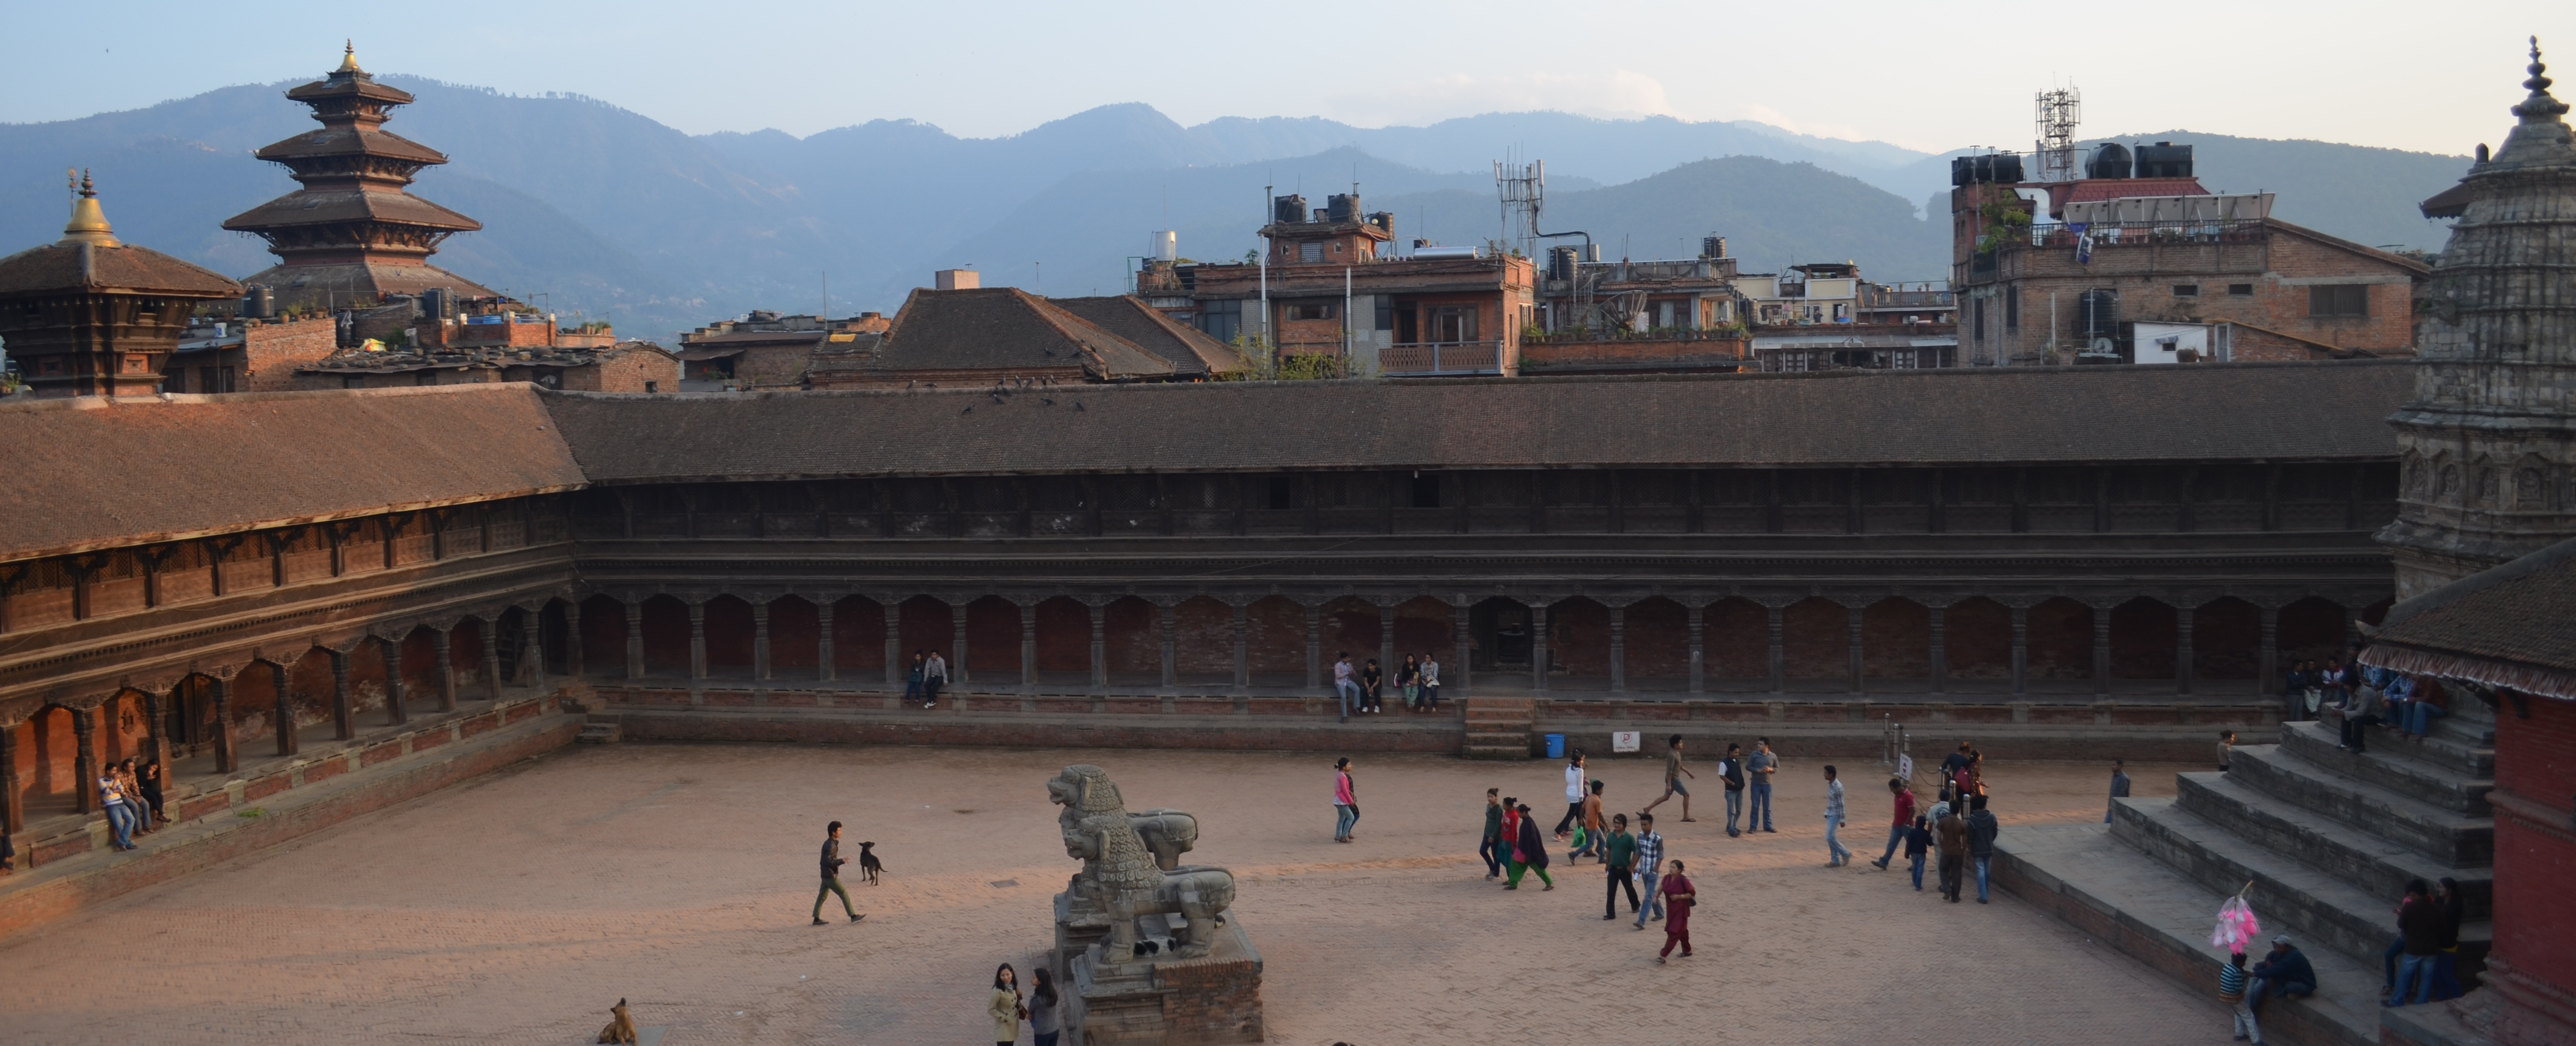 essay on bhaktapur durbar square Book your tickets online for bhaktapur durbar square, bhaktapur: see 1,306 reviews, articles, and 1,905 photos of bhaktapur durbar square, ranked no3 on tripadvisor.